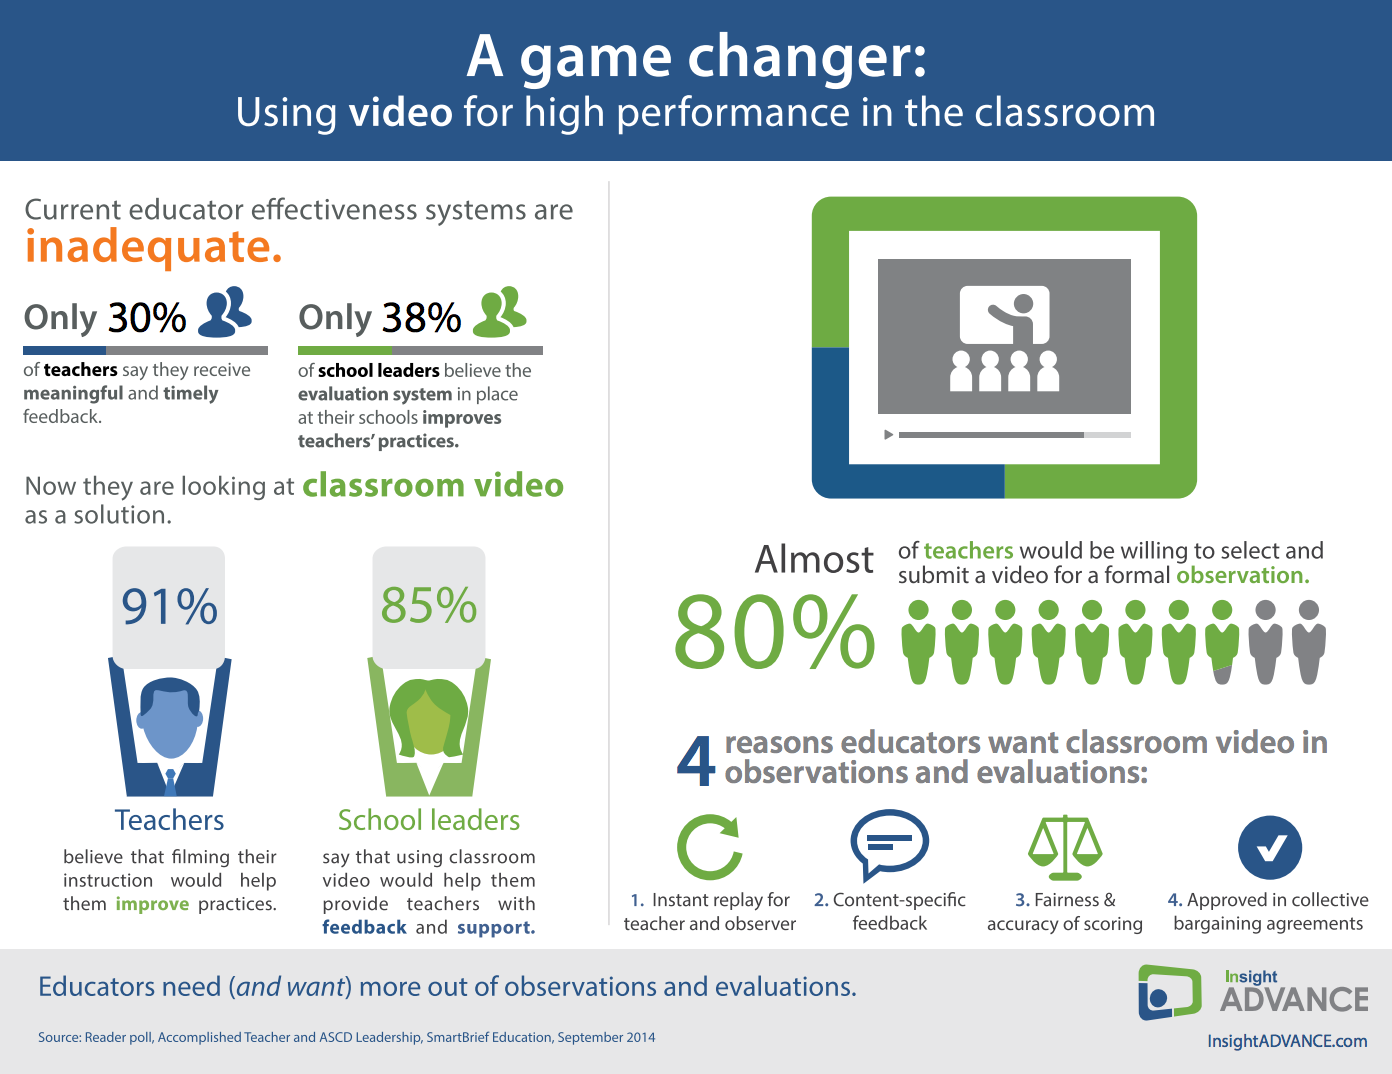 Game Changer - Using video for high performance in the classroom